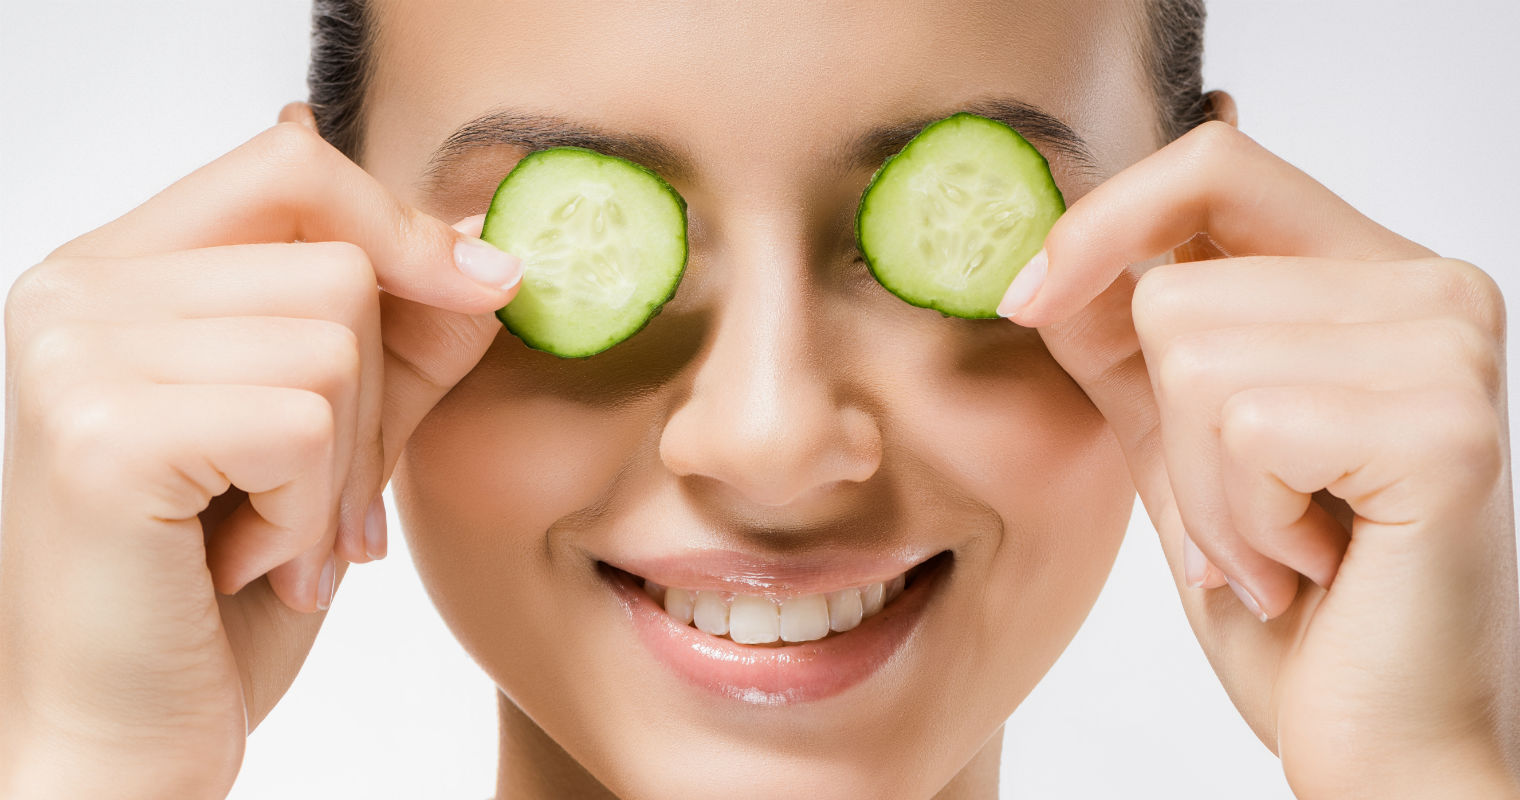 Cooling effects ofcucumber slices help reduce eye bags effectively.